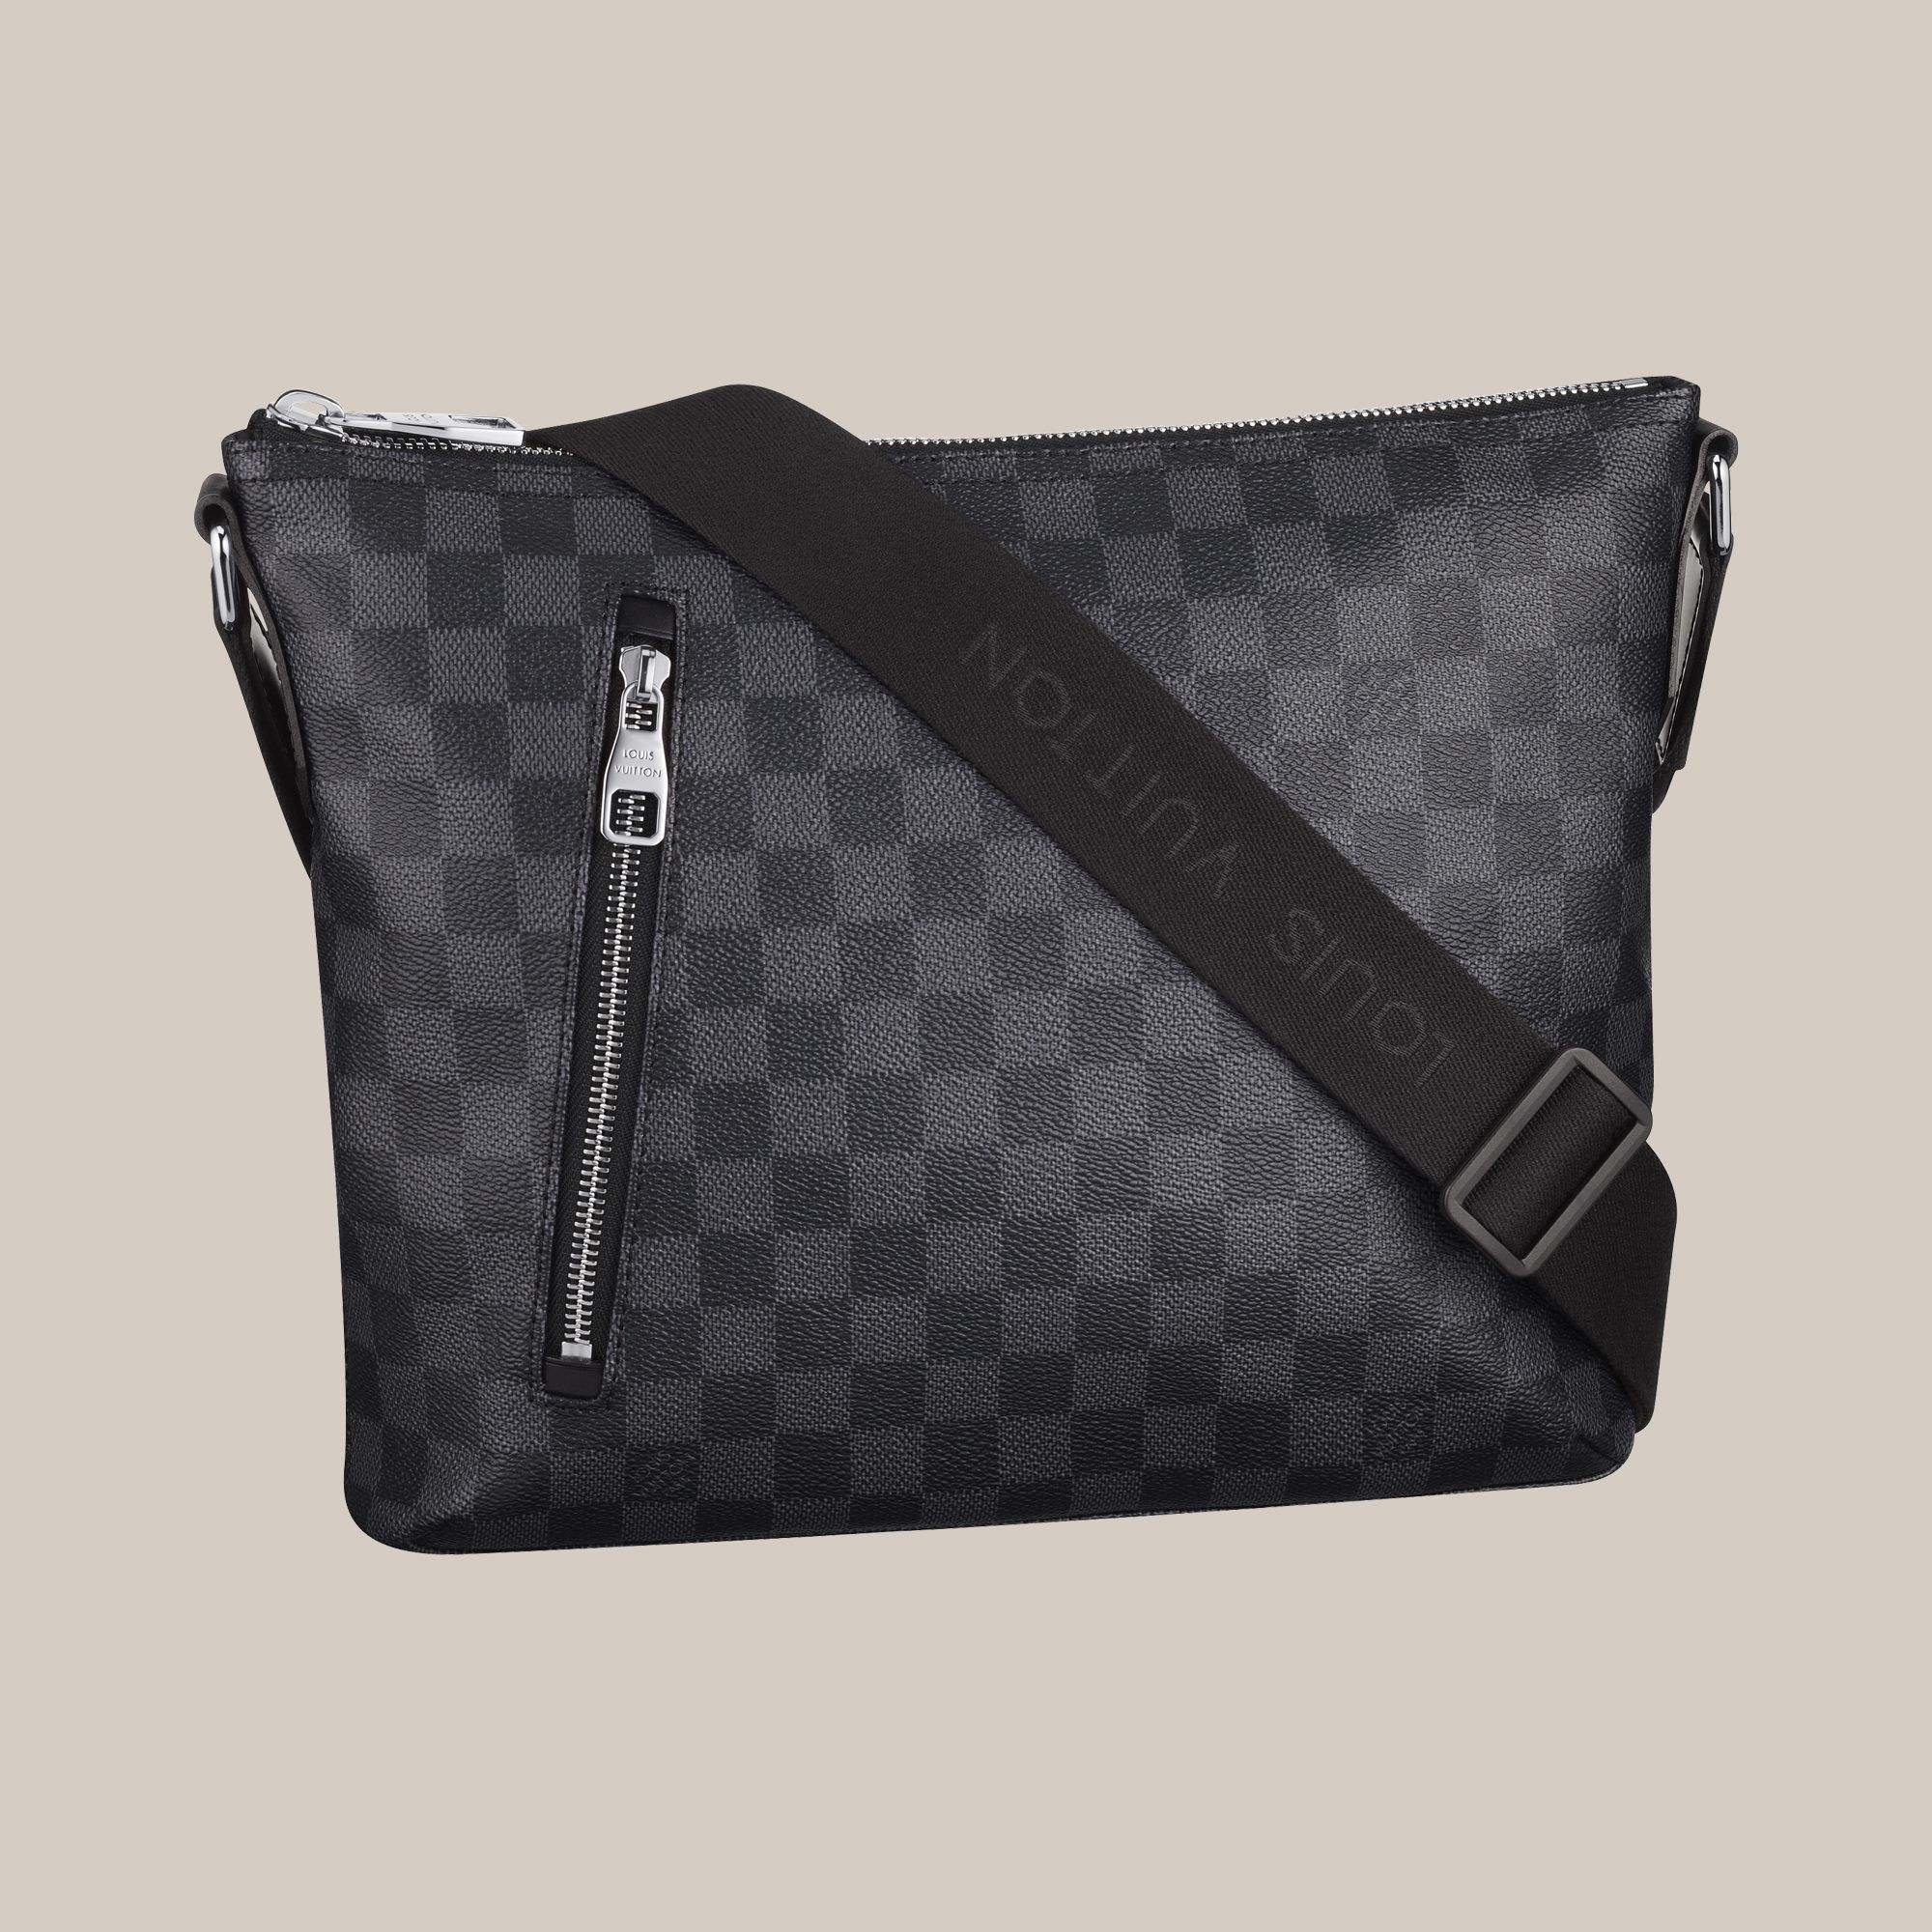 Louis Vuitton Mick PM - - Sacs-homme   Sacoche Louis Vuitton en 2019 ... dc785d14e12